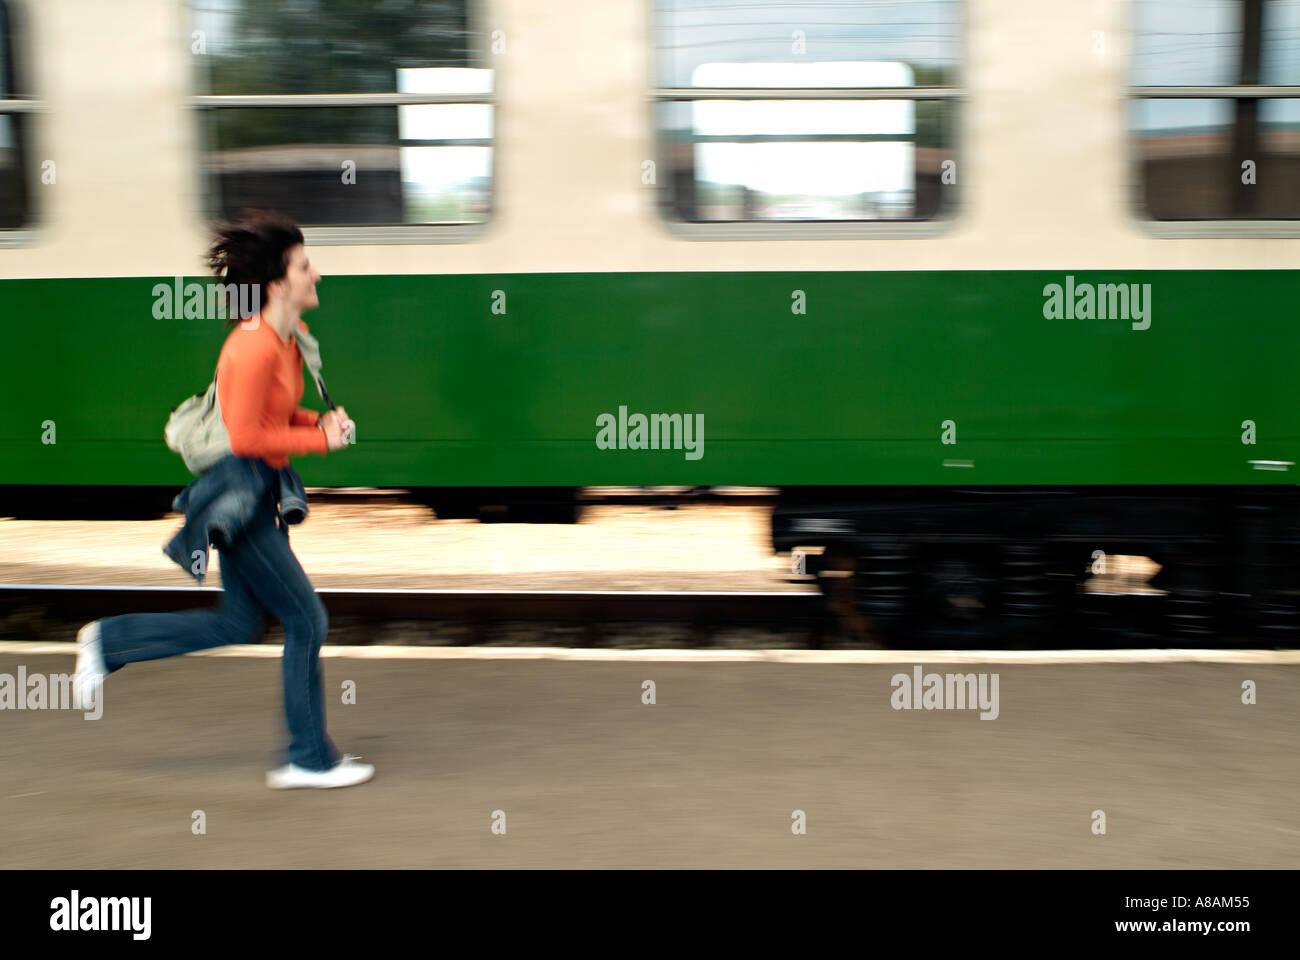 Woman Running Along a Train Station Platform Trying to Catch a Departing Train - Stock Image